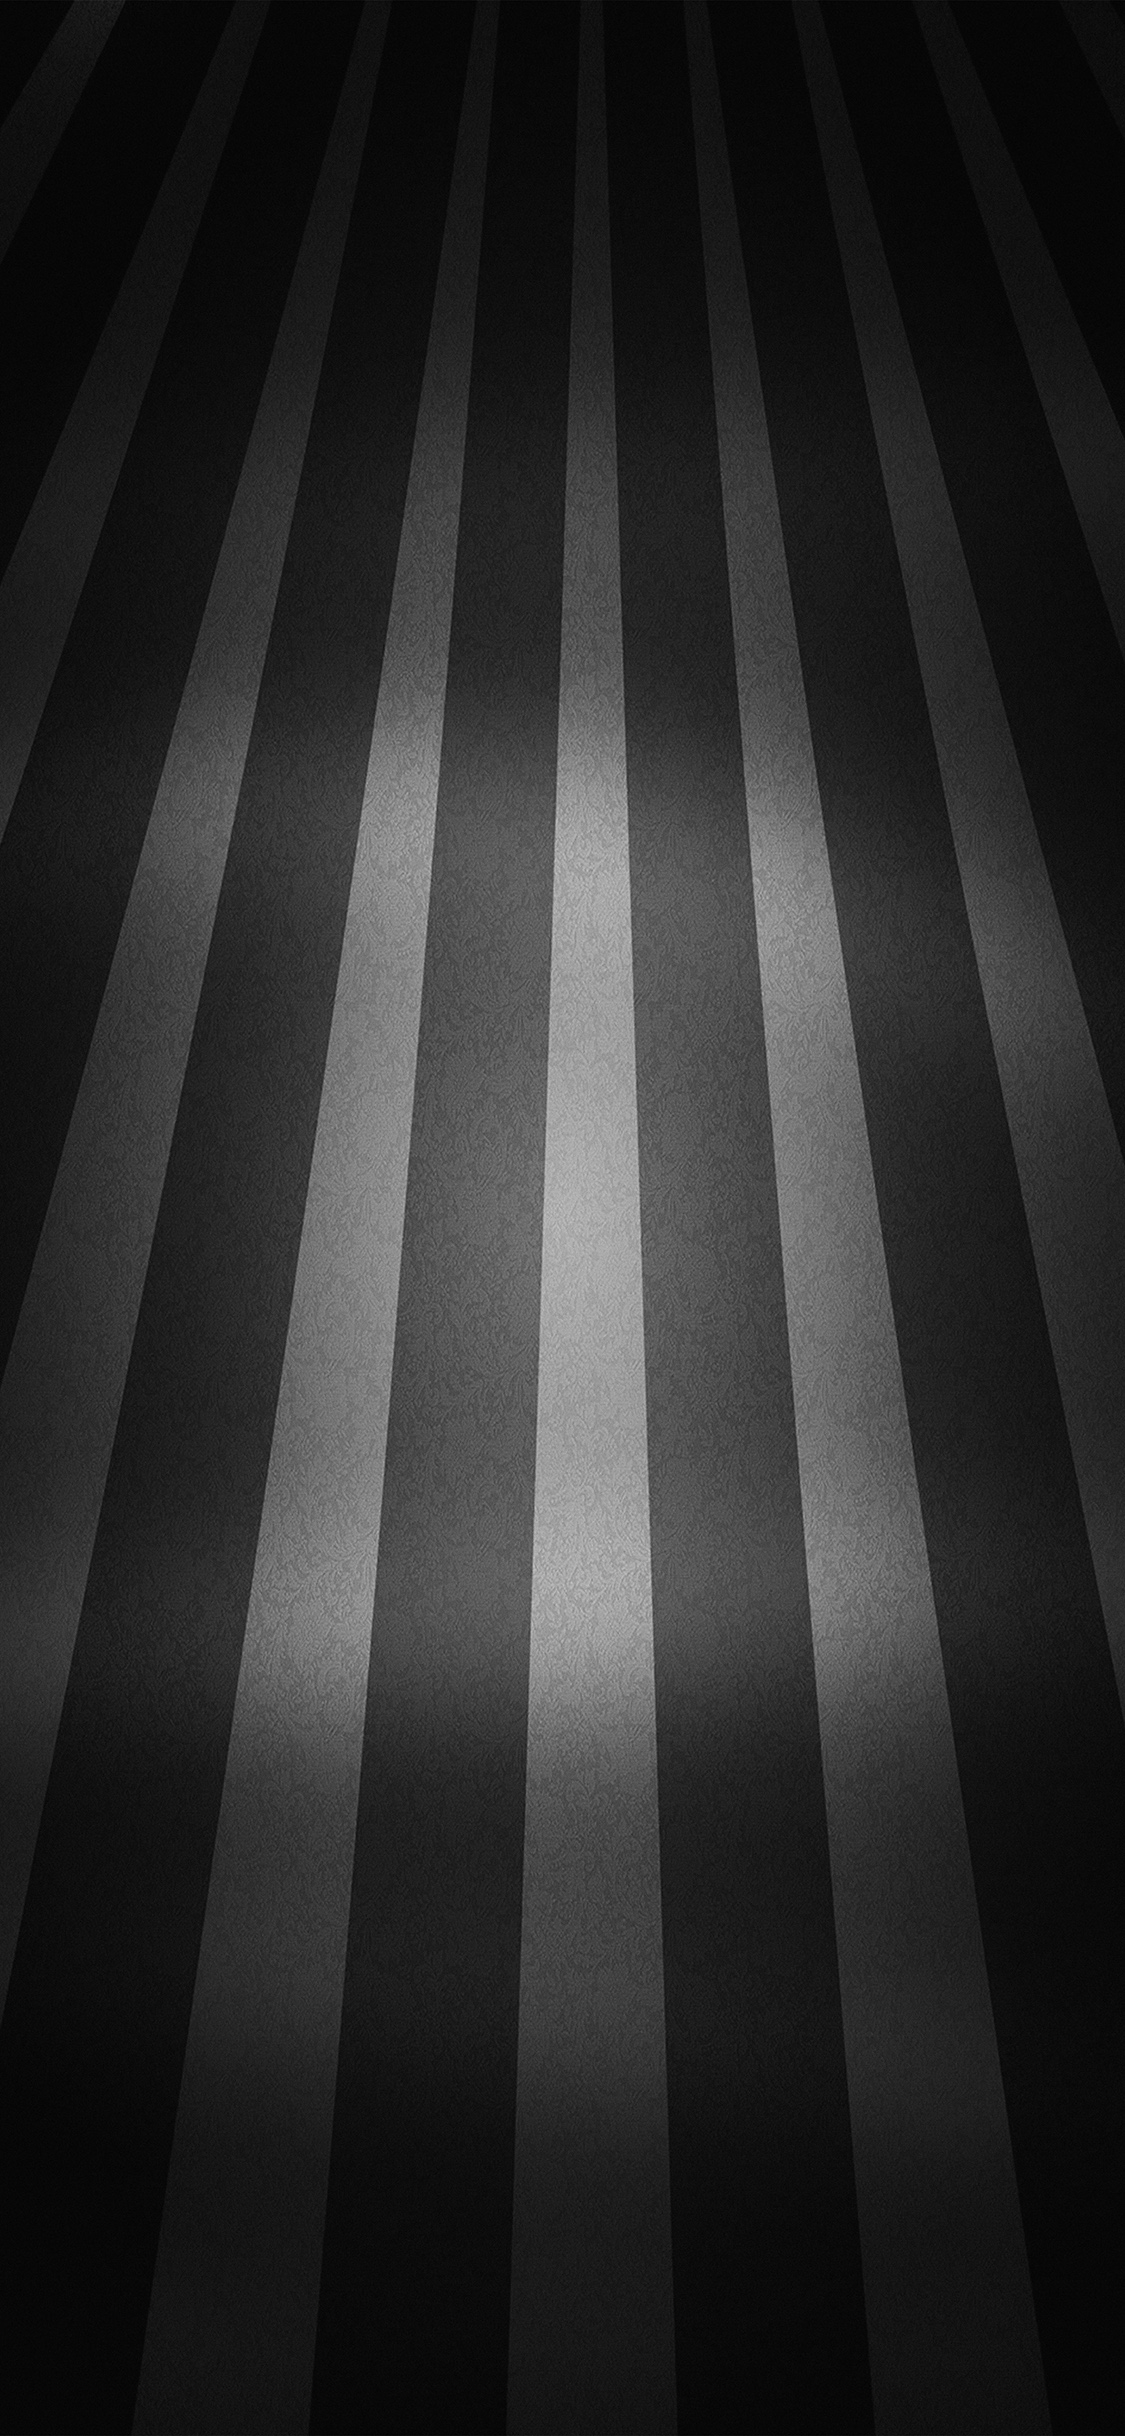 iPhoneXpapers.com-Apple-iPhone-wallpaper-vt36-line-bw-dark-straight-pattern